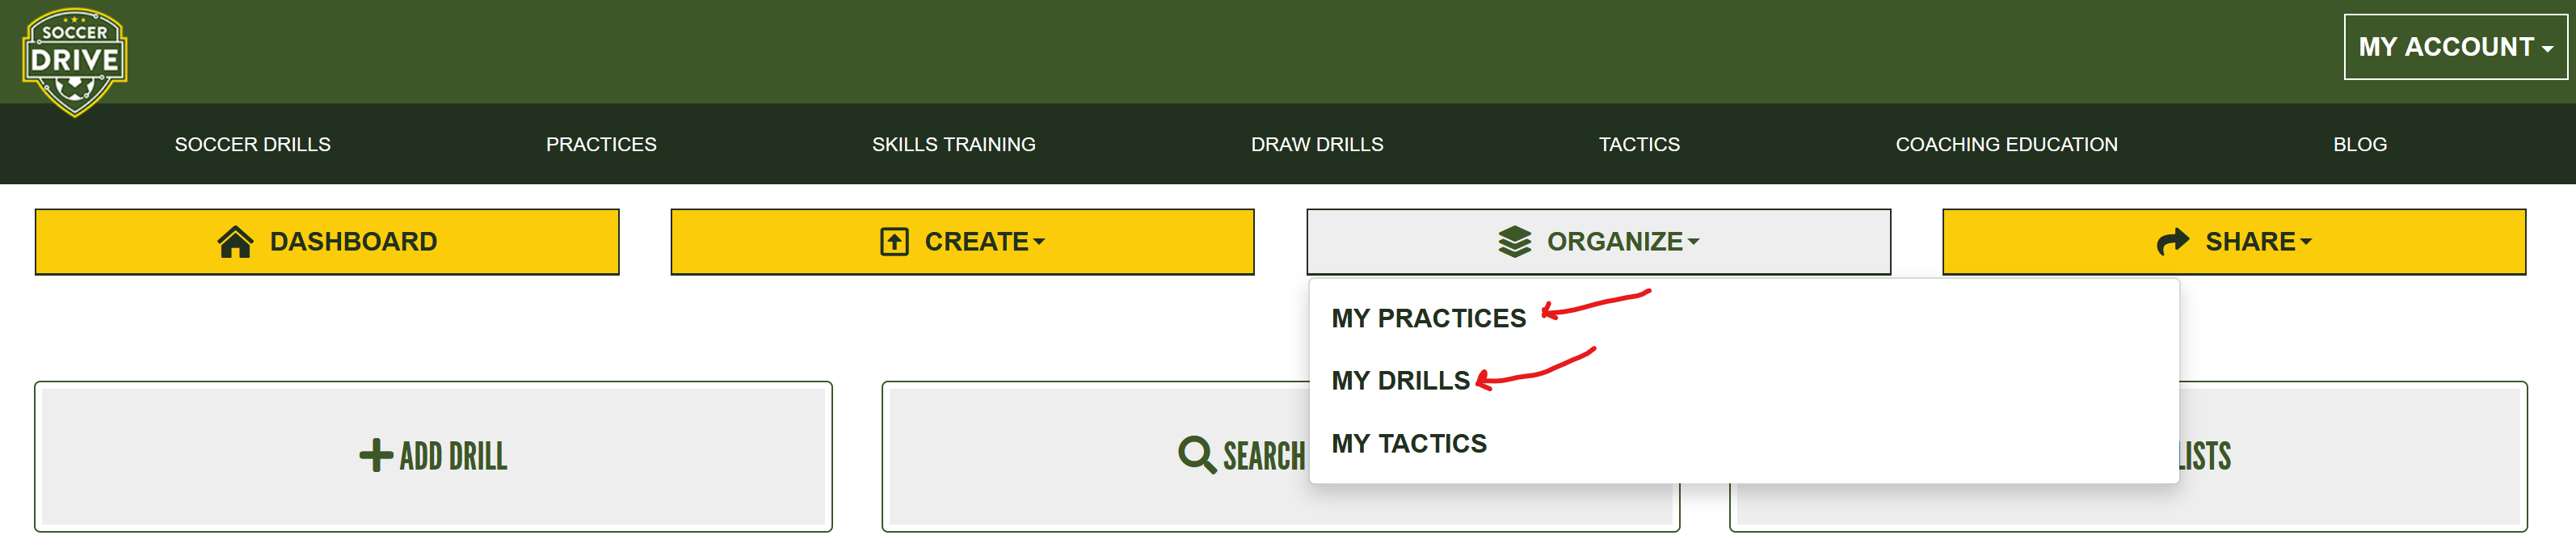 My drills and my practices link from navigation bar